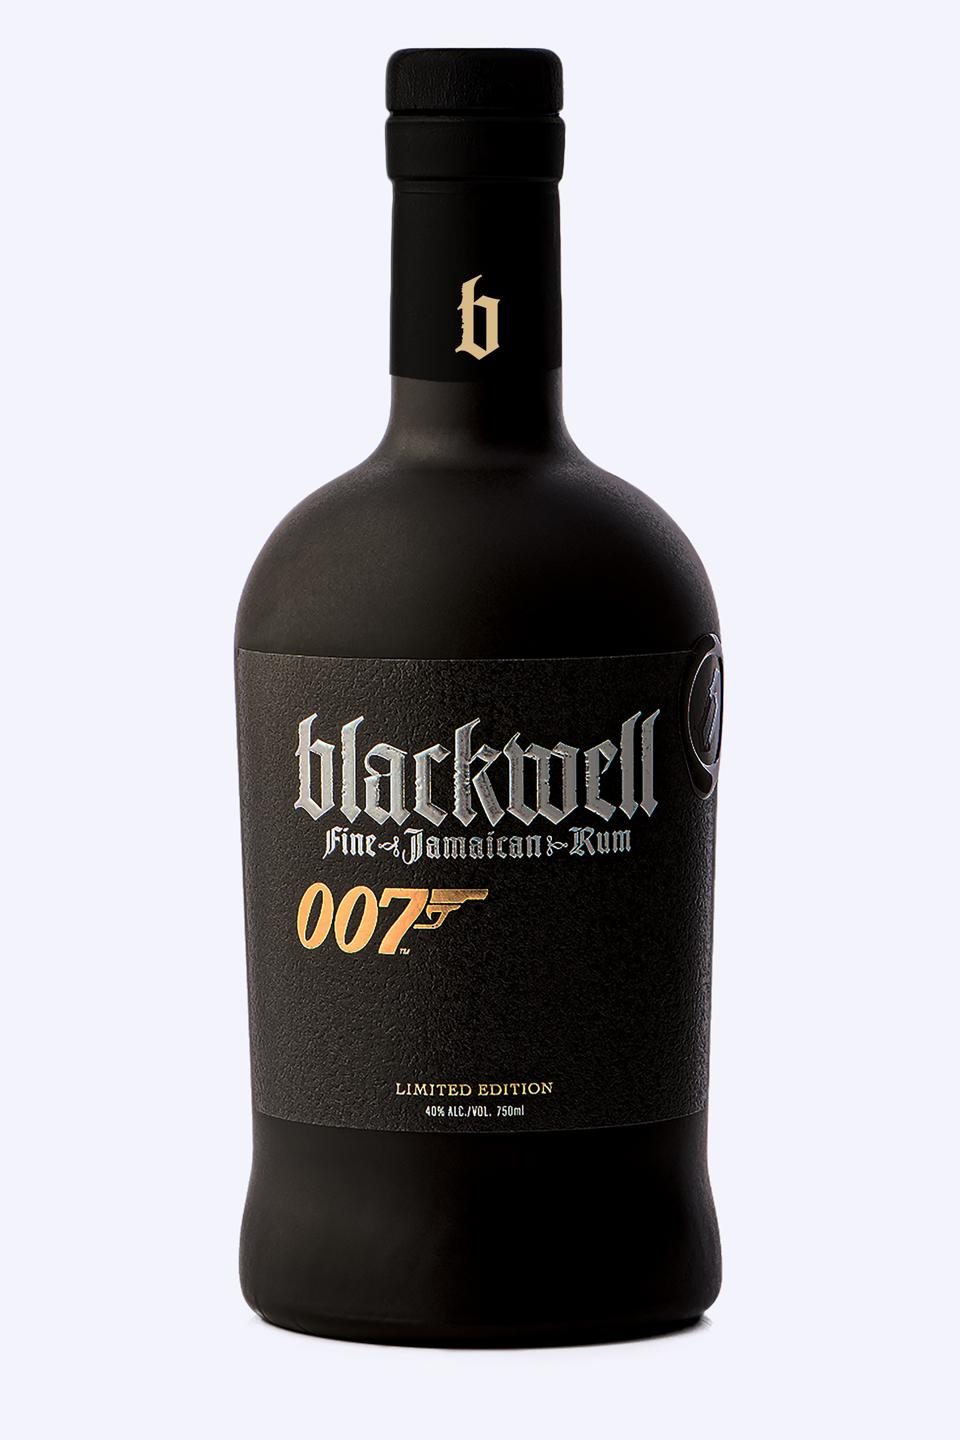 Special bottle of Blackwell Rum